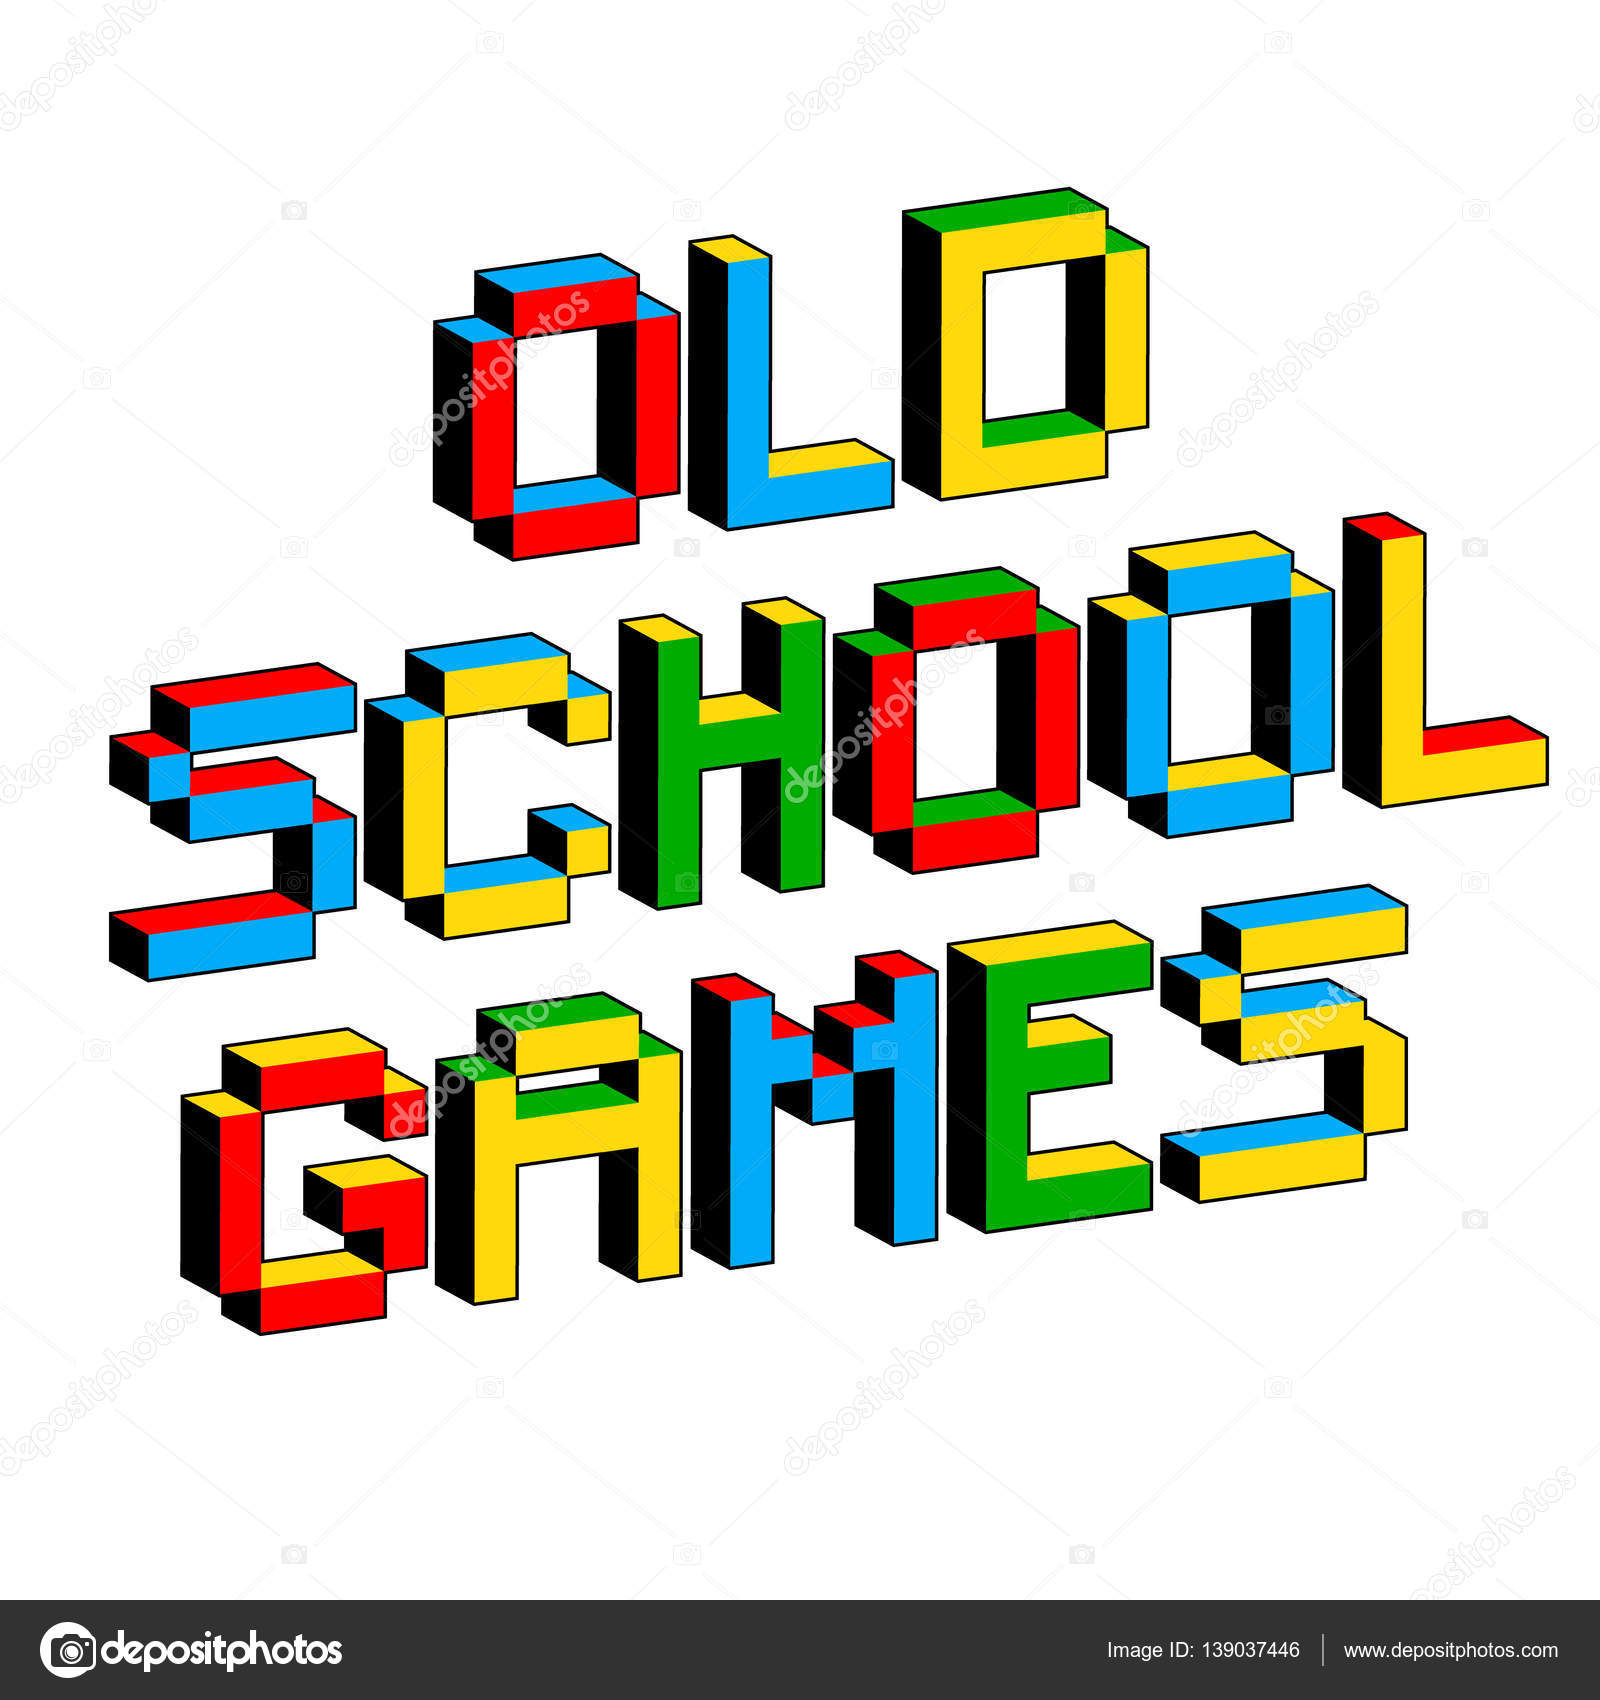 Old School Games text in style of old 8.